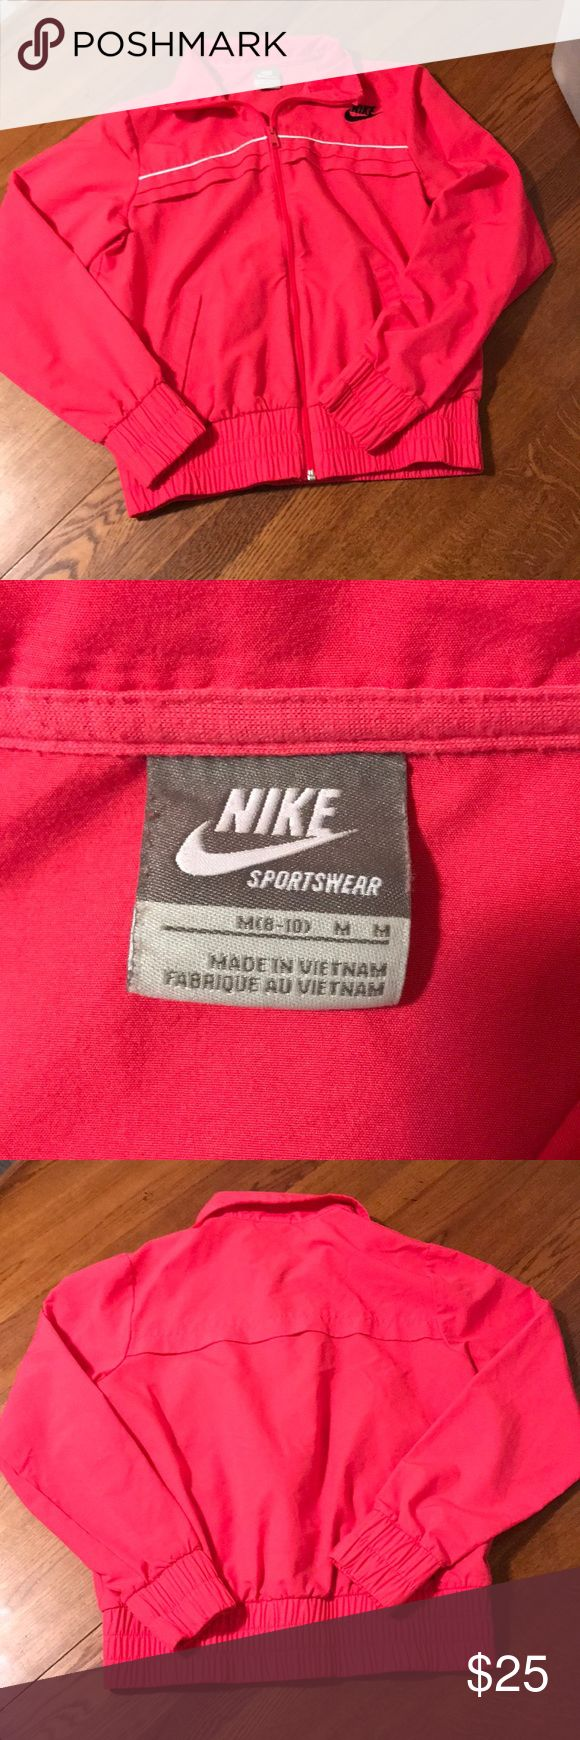 Vintage Nike coat size medium Nice gently worn jacket.  In very good condition.  Size medium. Looking for a new home.  This was a find in my moms closet. Nike Jackets & Coats